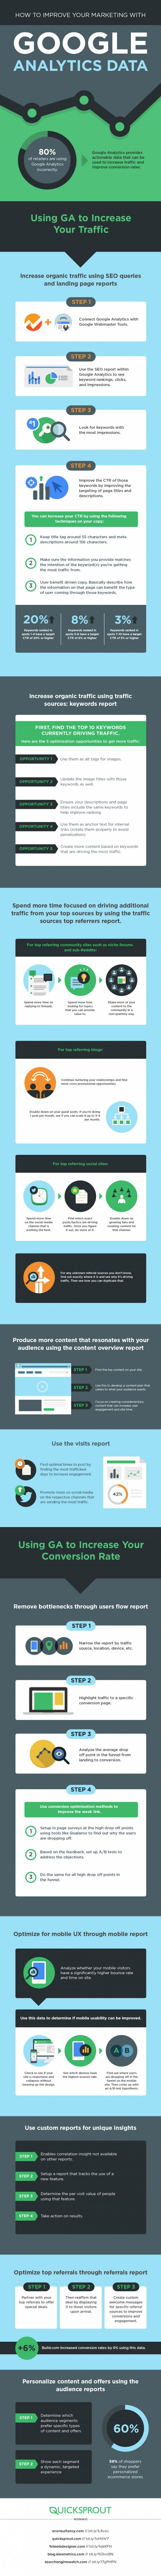 Google_Analytics_Infographic-550x8800